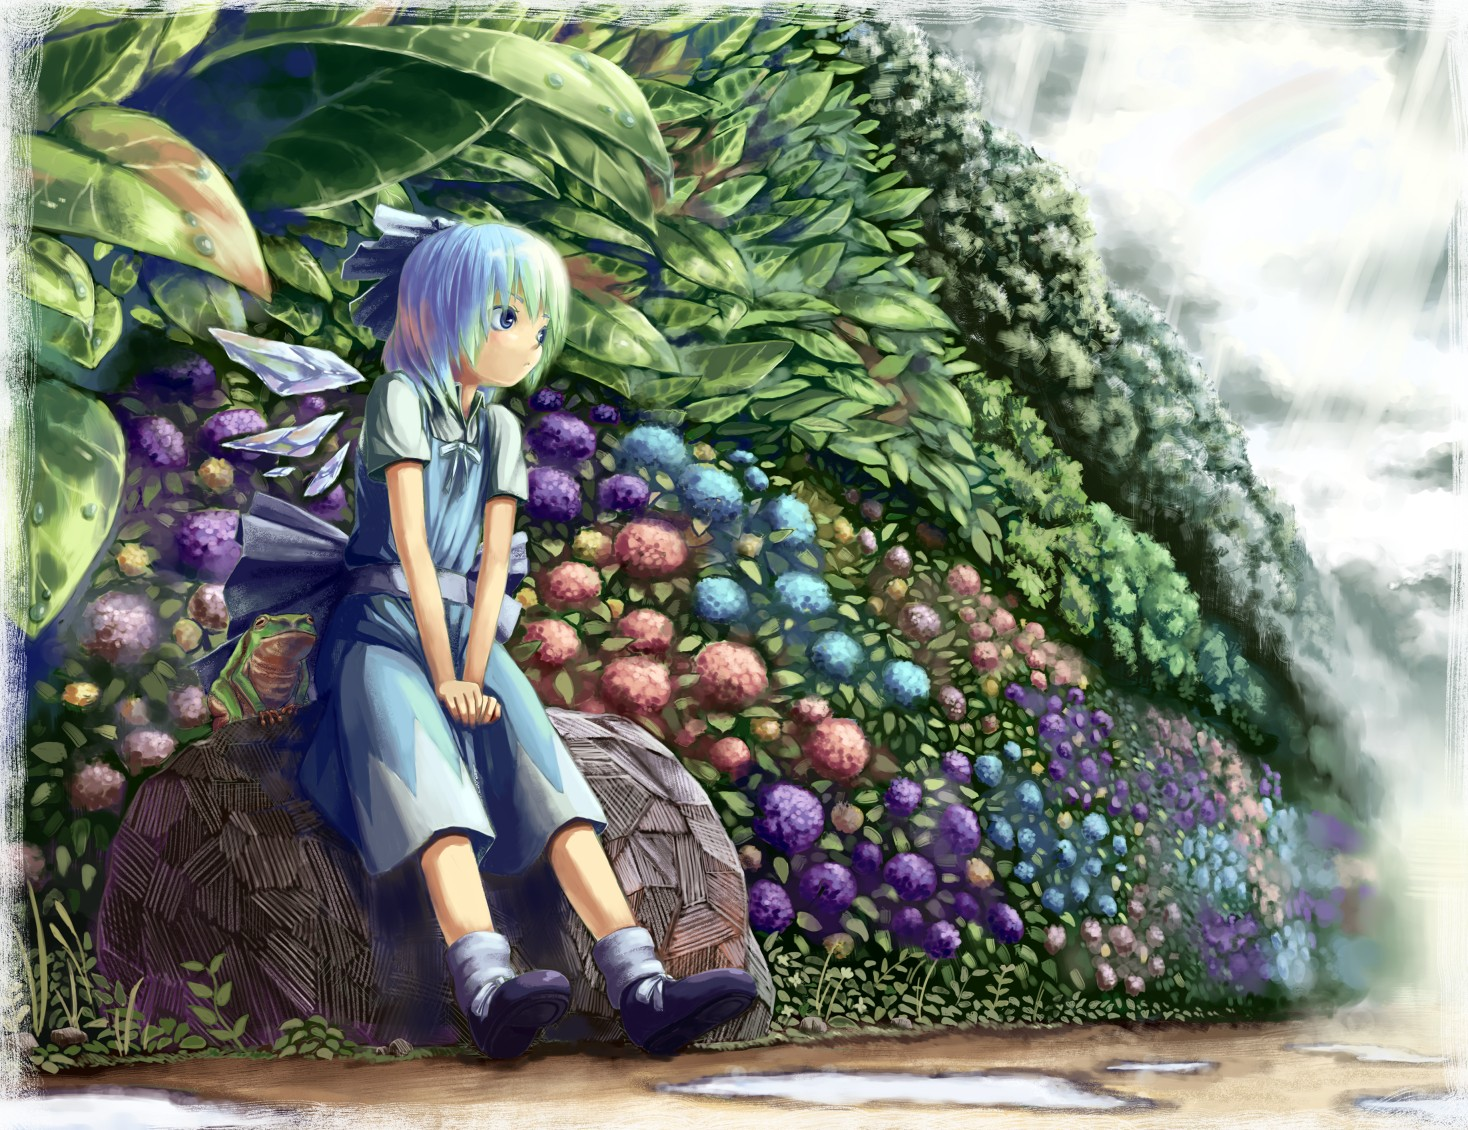 video games ice Touhou wings dress flowers blue eyes Cirno outdoors socks fairies blue hair plants short hair bows sitting blue dress anime girls hair ornaments bangs